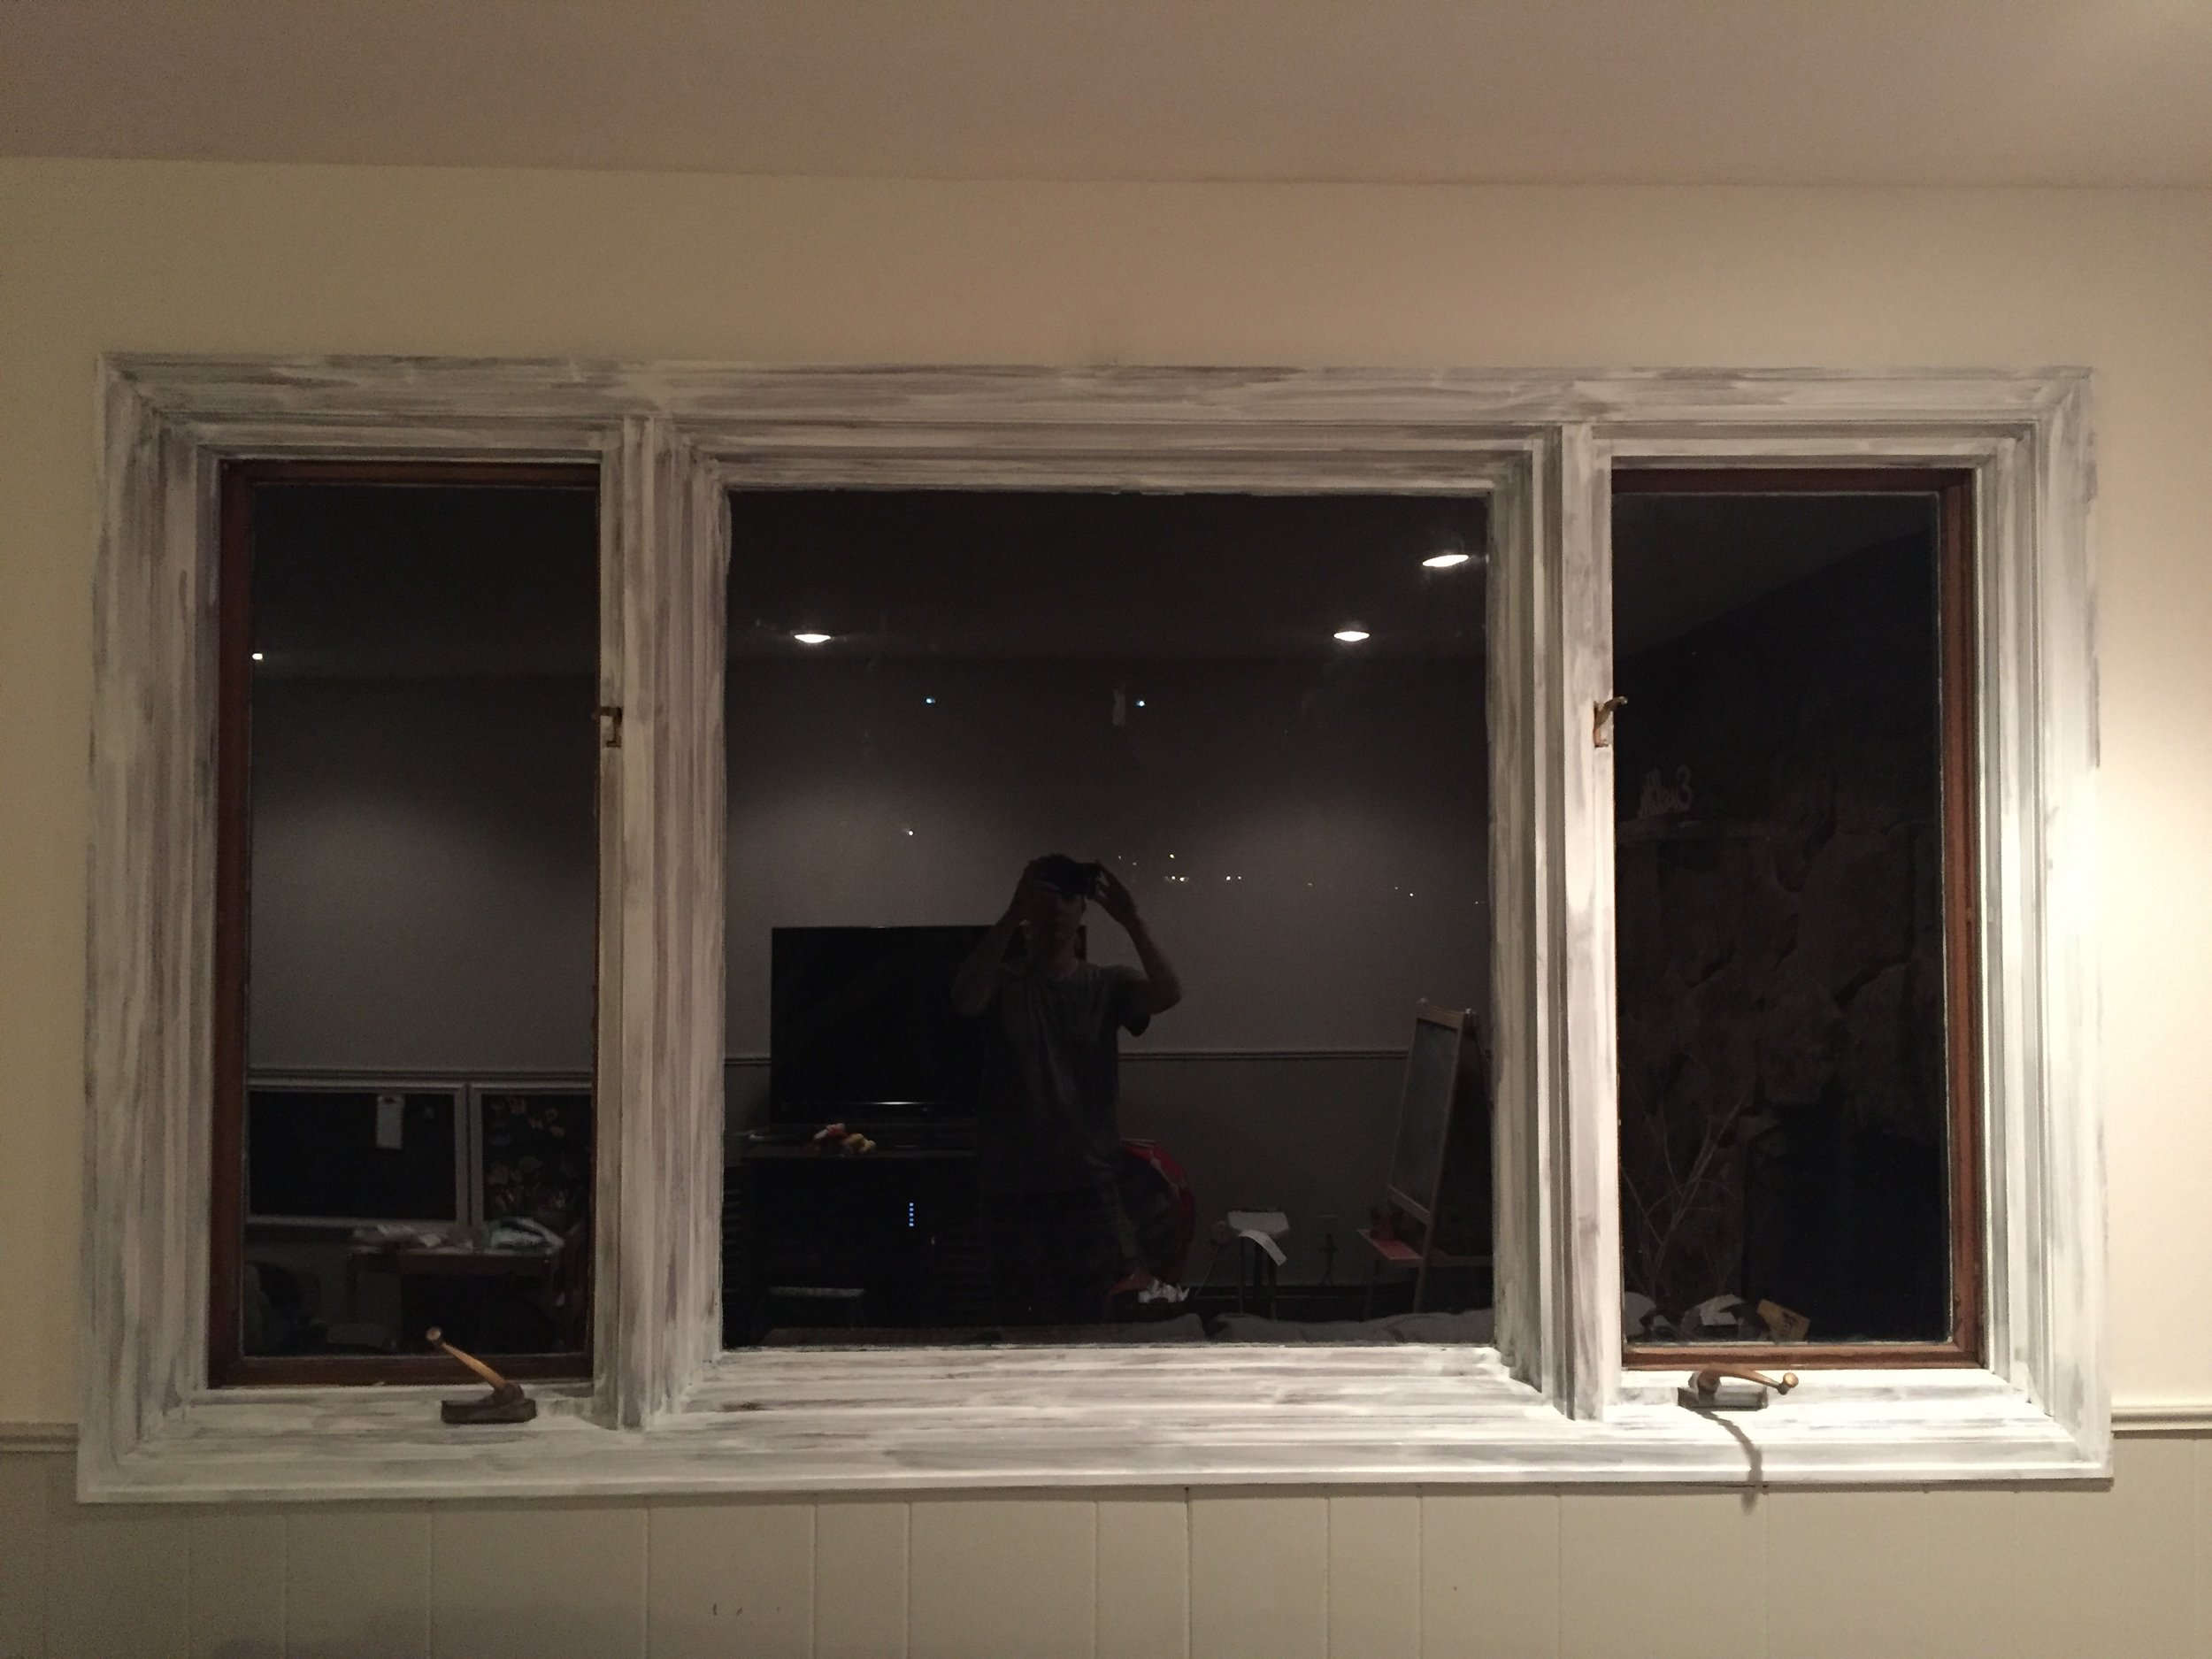 First coat of primer on the window